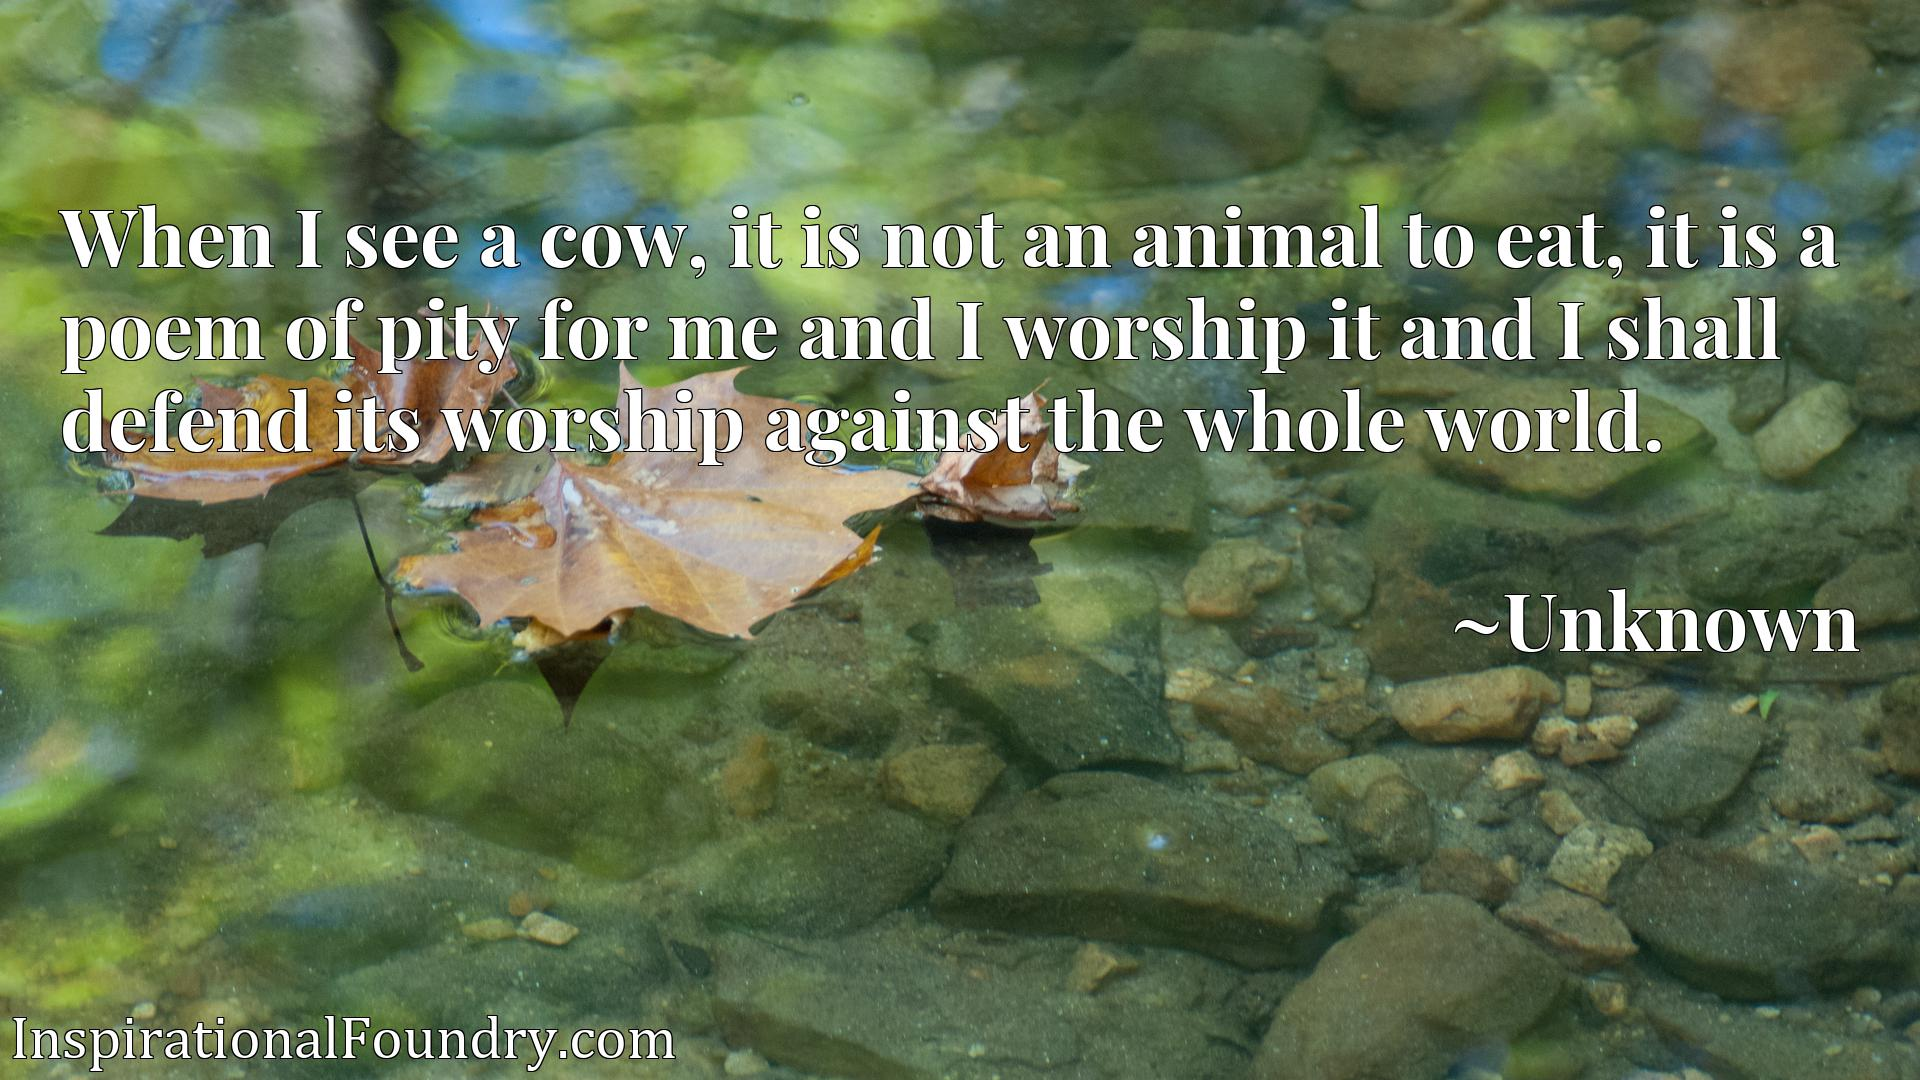 When I see a cow, it is not an animal to eat, it is a poem of pity for me and I worship it and I shall defend its worship against the whole world.